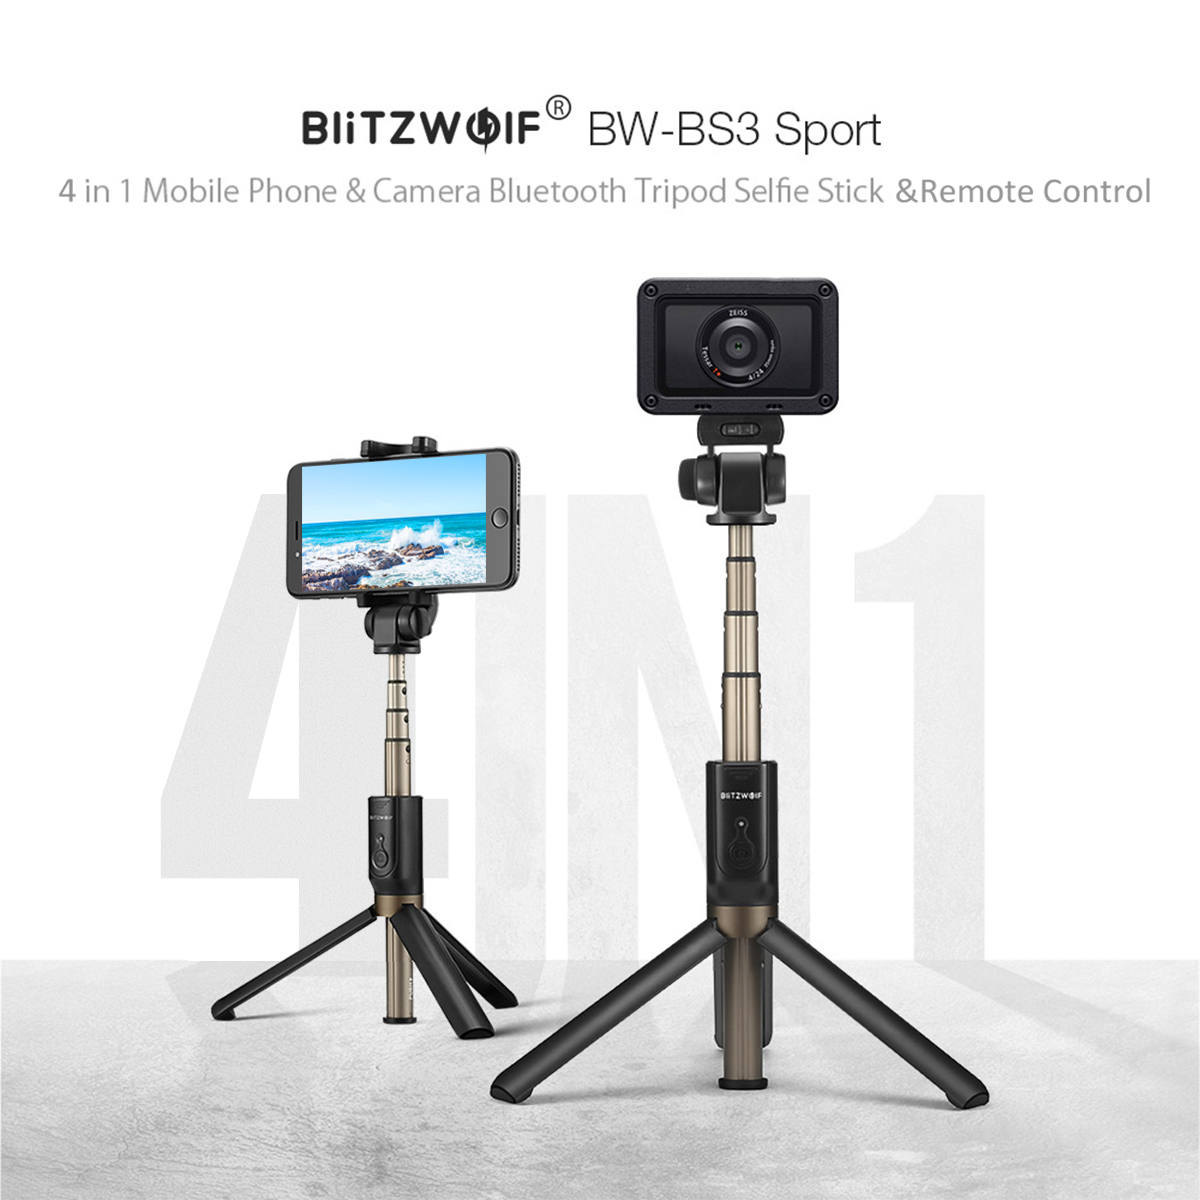 Blitzwolf 4in1 Bluetooth Tripod Selfie Stick Remote For